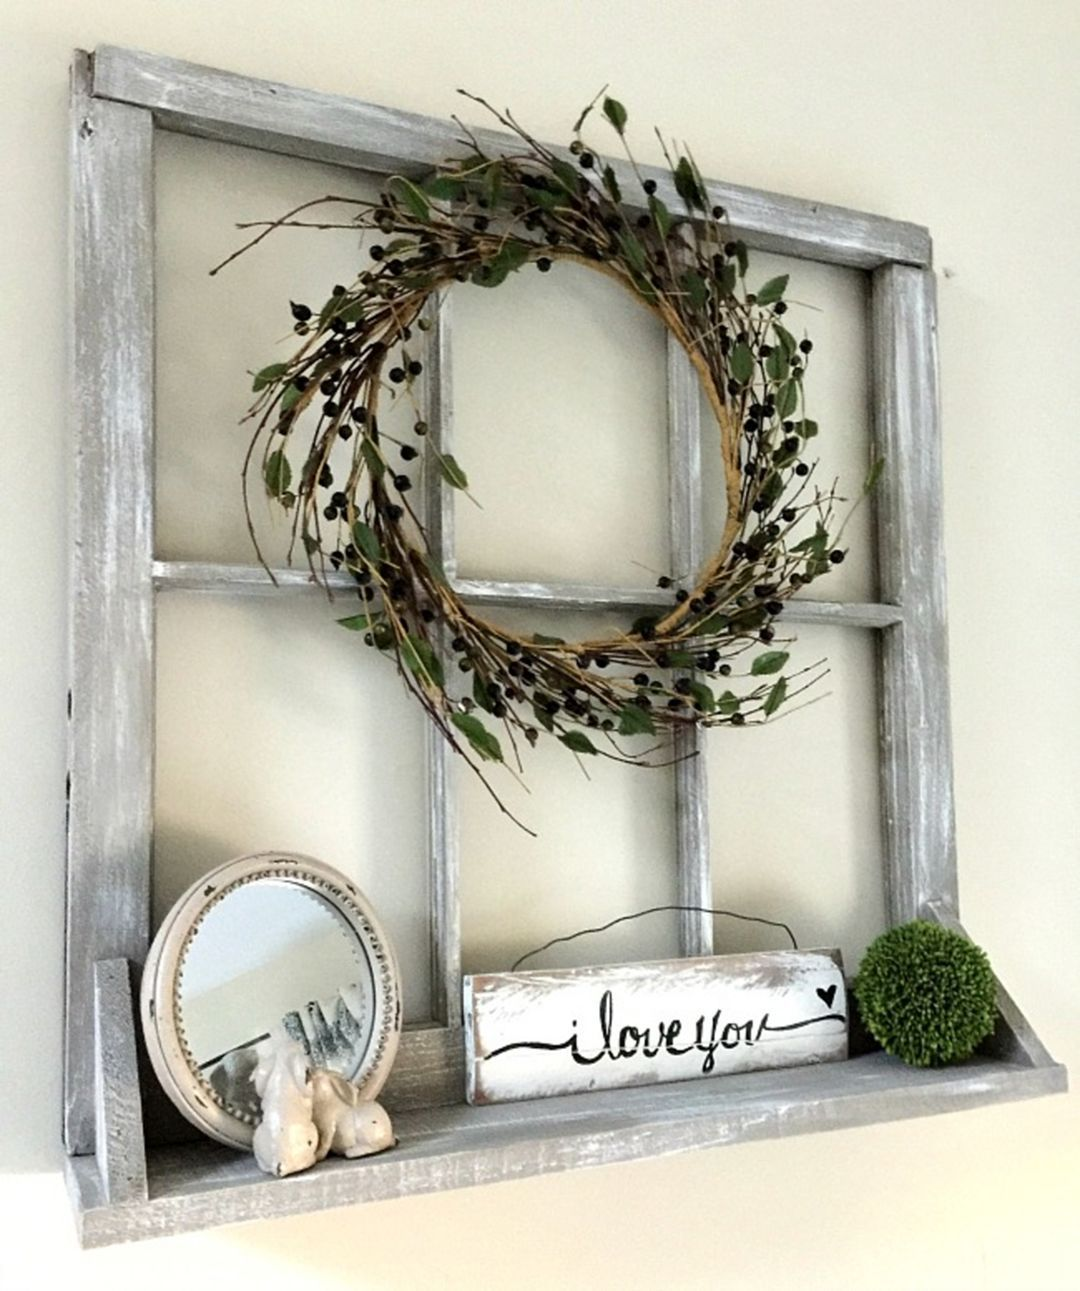 Window Pane And Wreath Entry Display Old Window Decor Old Window Projects Window Frame Decor